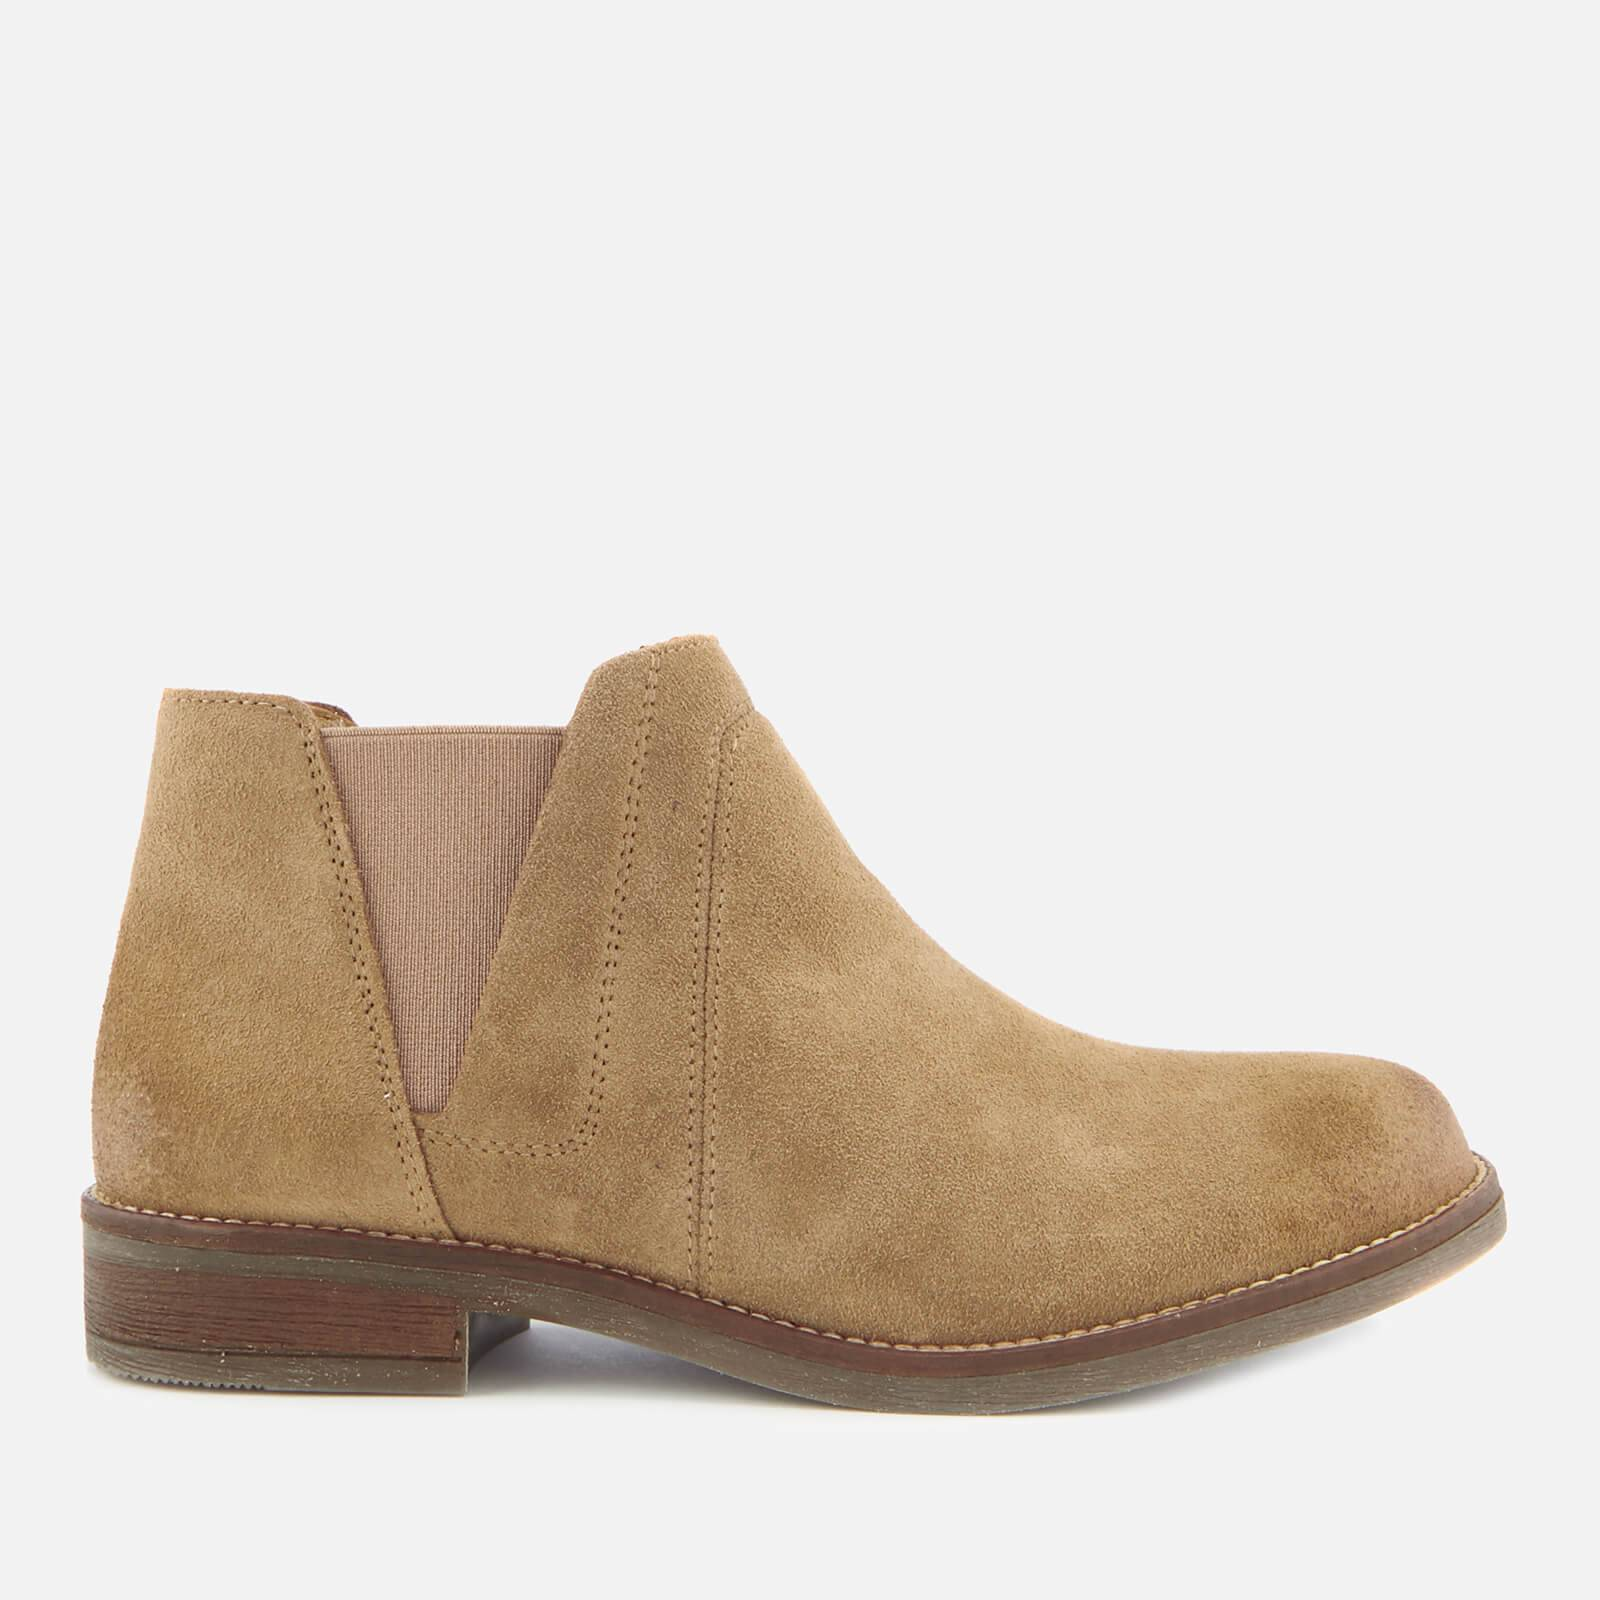 Clarks Women's Demi Beat Suede Ankle Boots - Sand - UK 7 - Beige